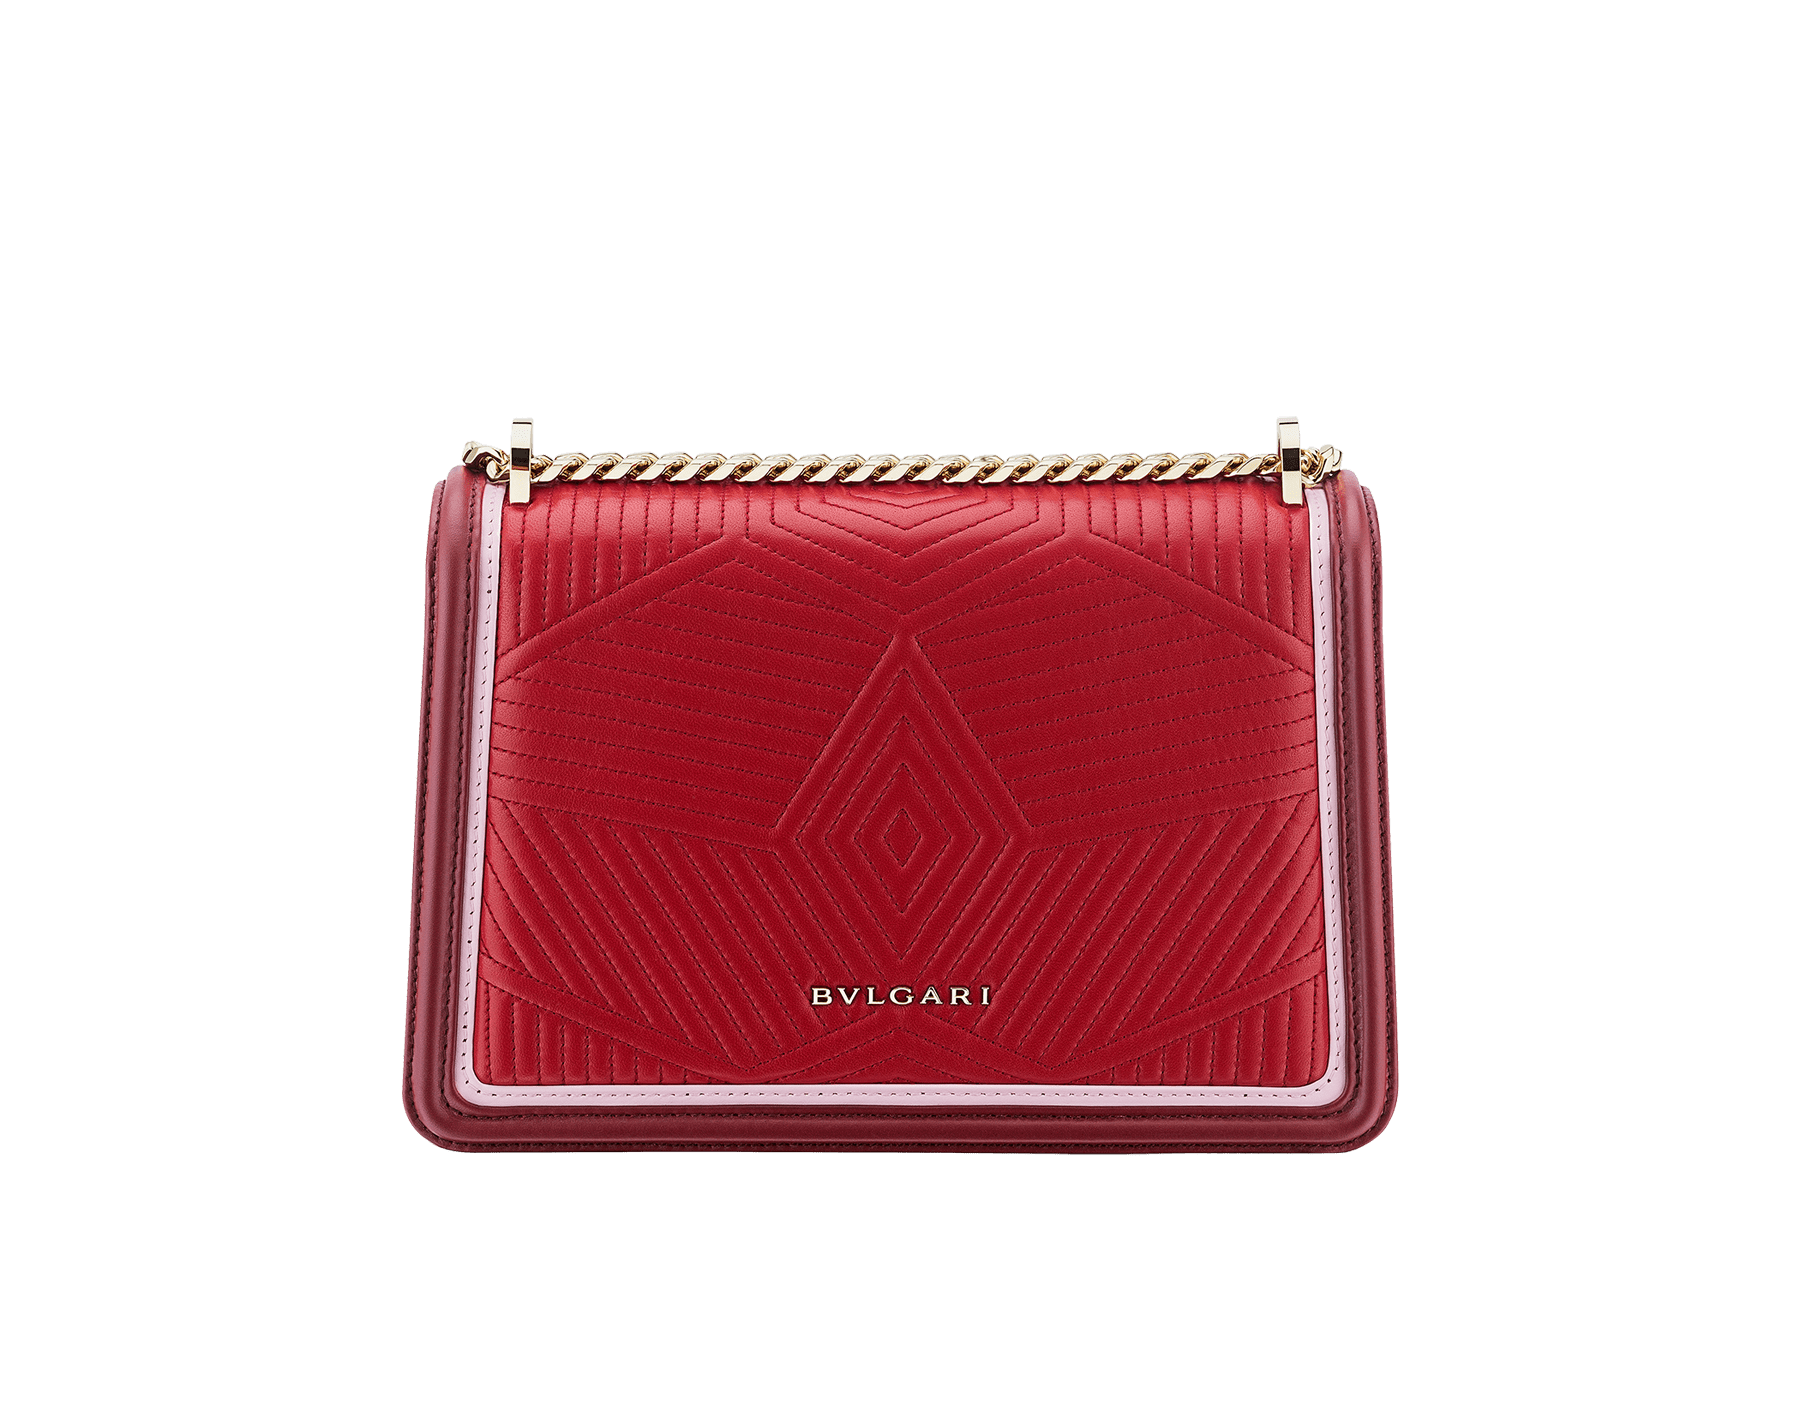 """Serpenti Diamond Blast"" shoulder bag in ruby red quilted calf leather and Roman garnet calf leather frames. Iconic snakehead closure in light gold plated brass enriched with black and rosa di francia enamel and black onyx eyes. 289463 image 3"